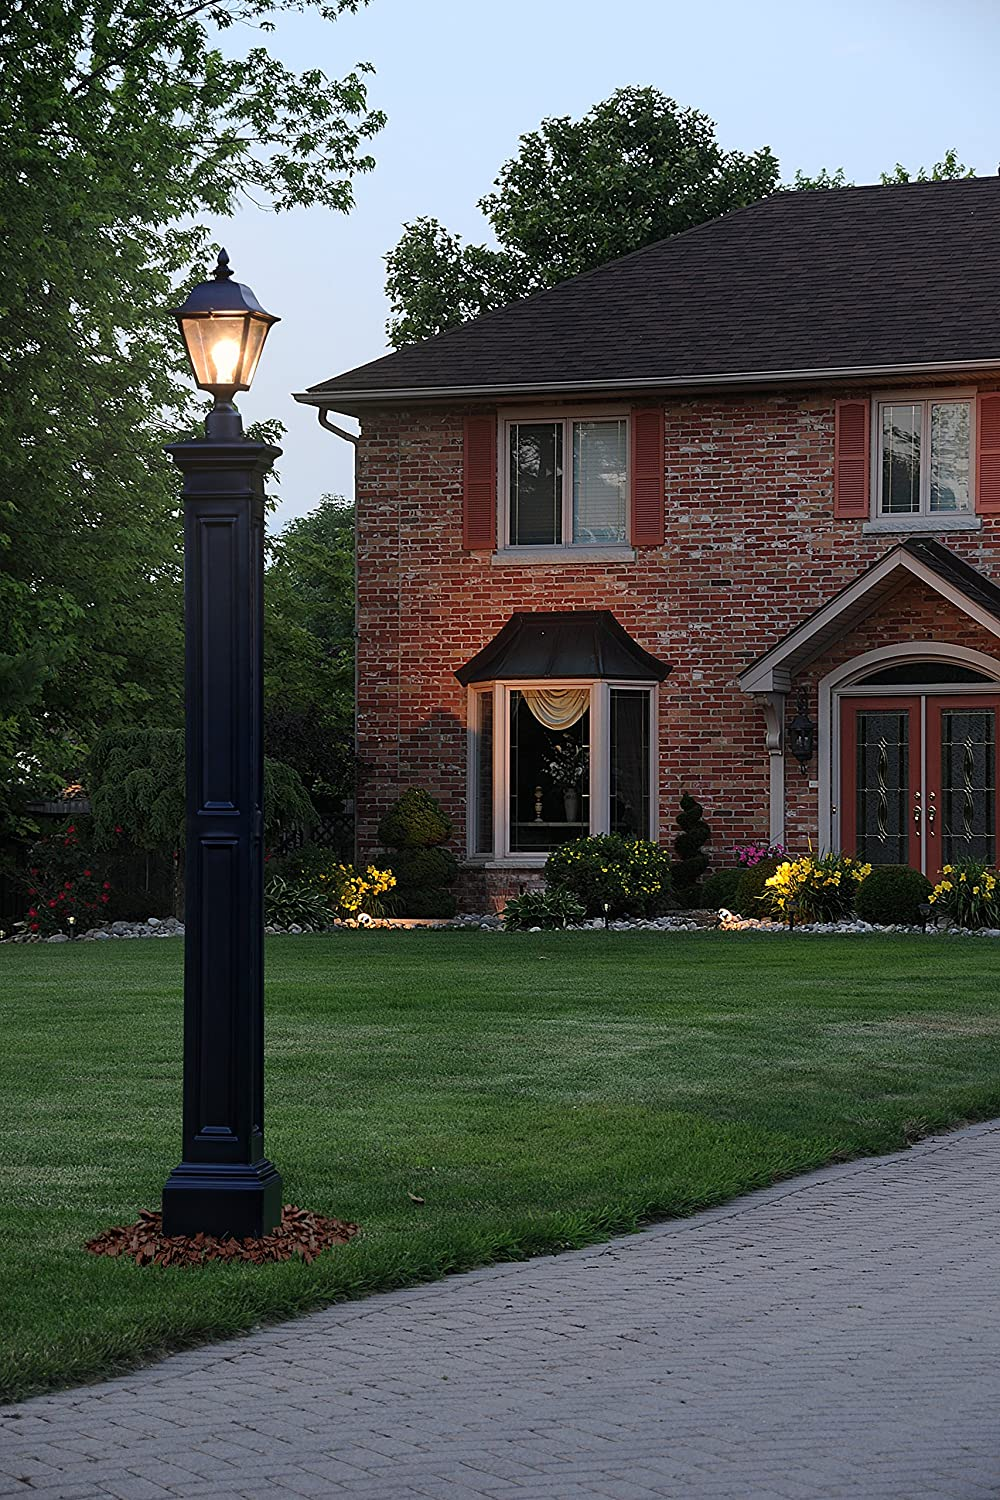 Amazon mayne 5838 wh liberty lamp post decorative post only amazon mayne 5838 wh liberty lamp post decorative post only white garden outdoor aloadofball Gallery